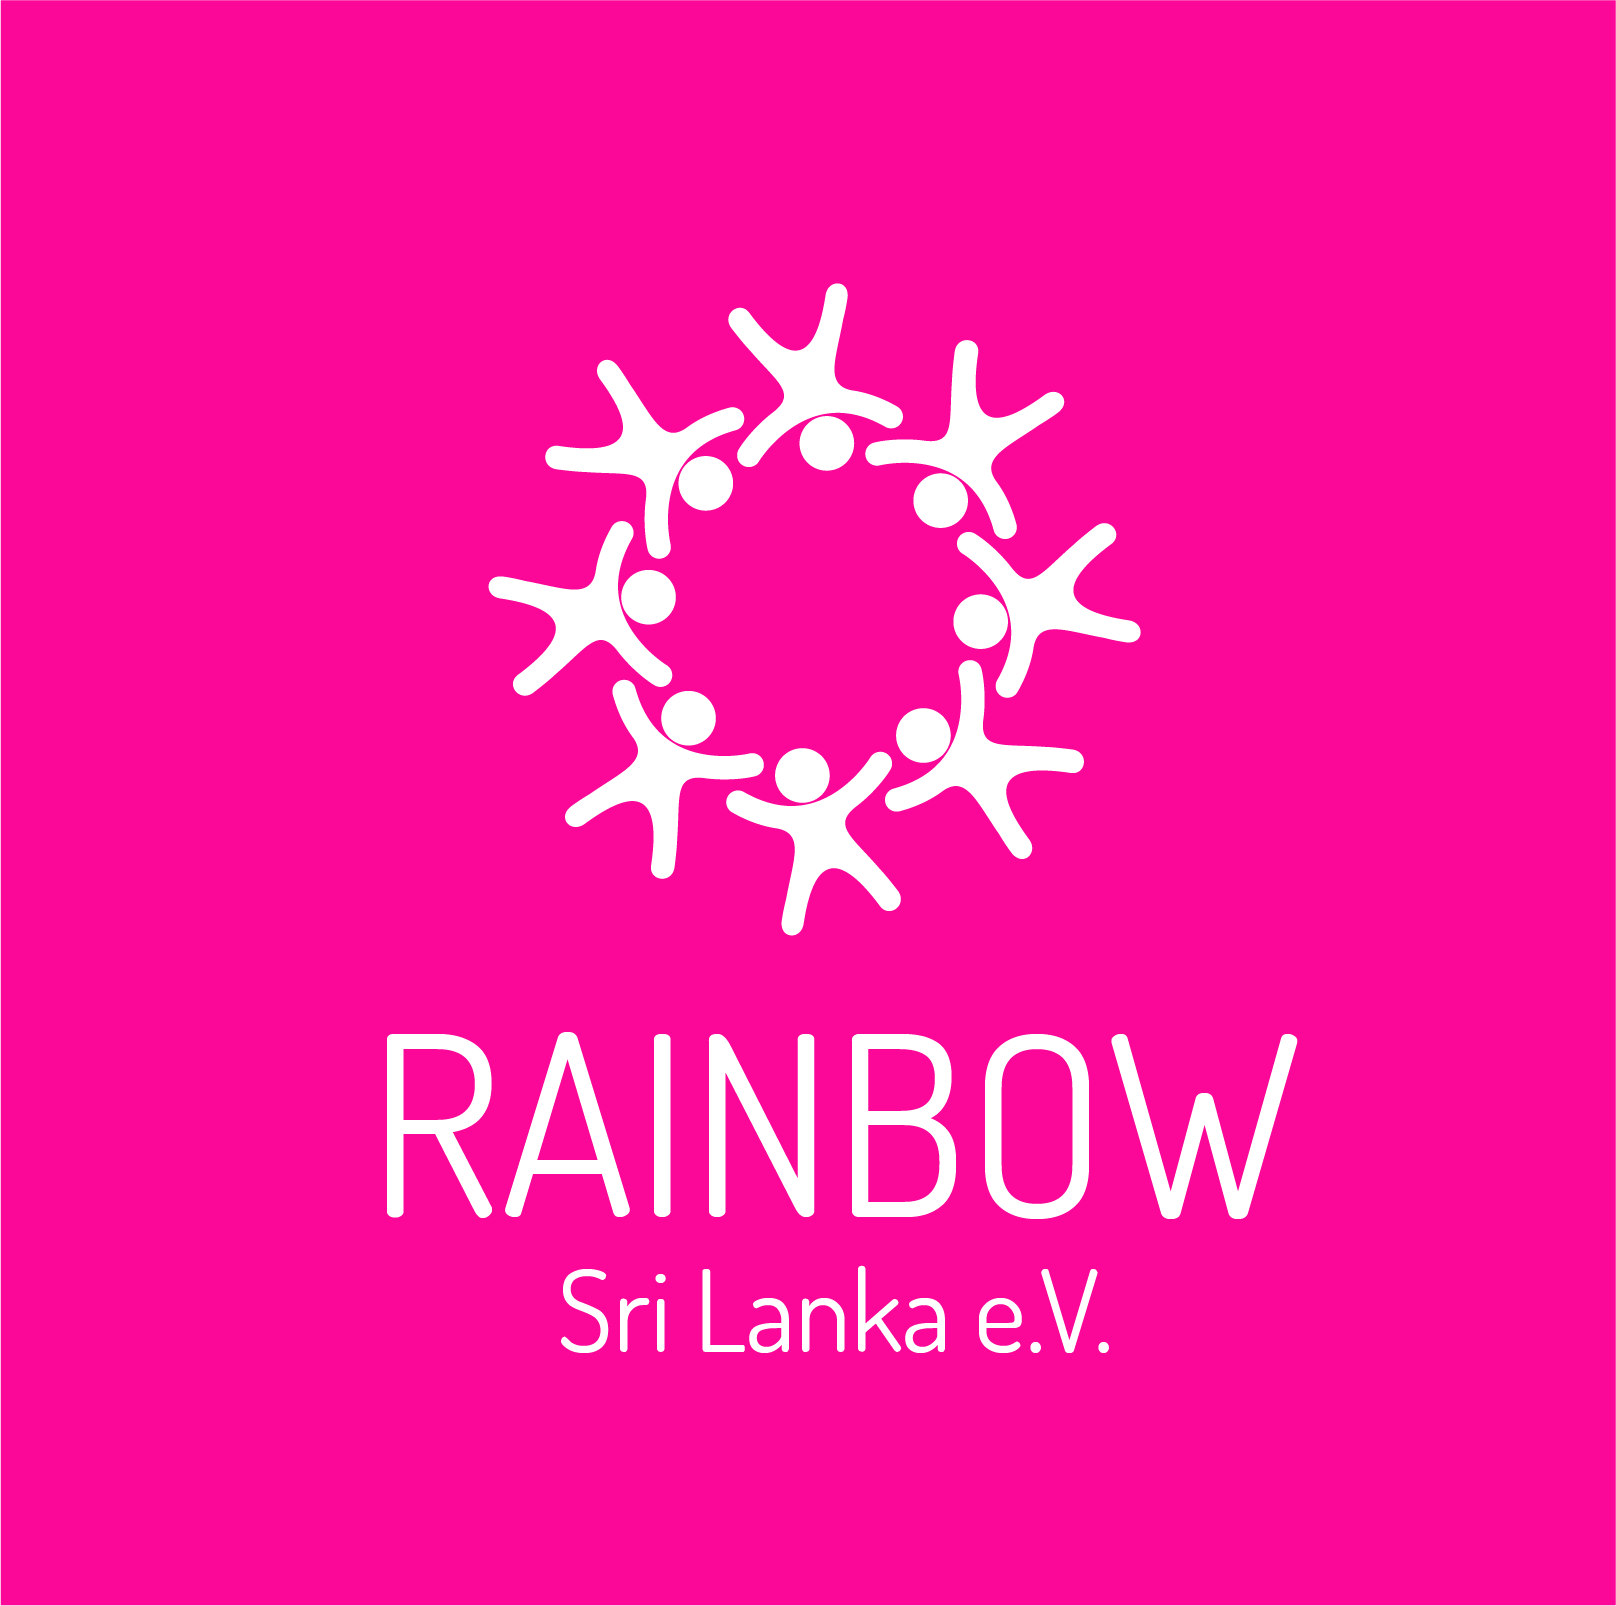 Rainbow Foundation Baddegama